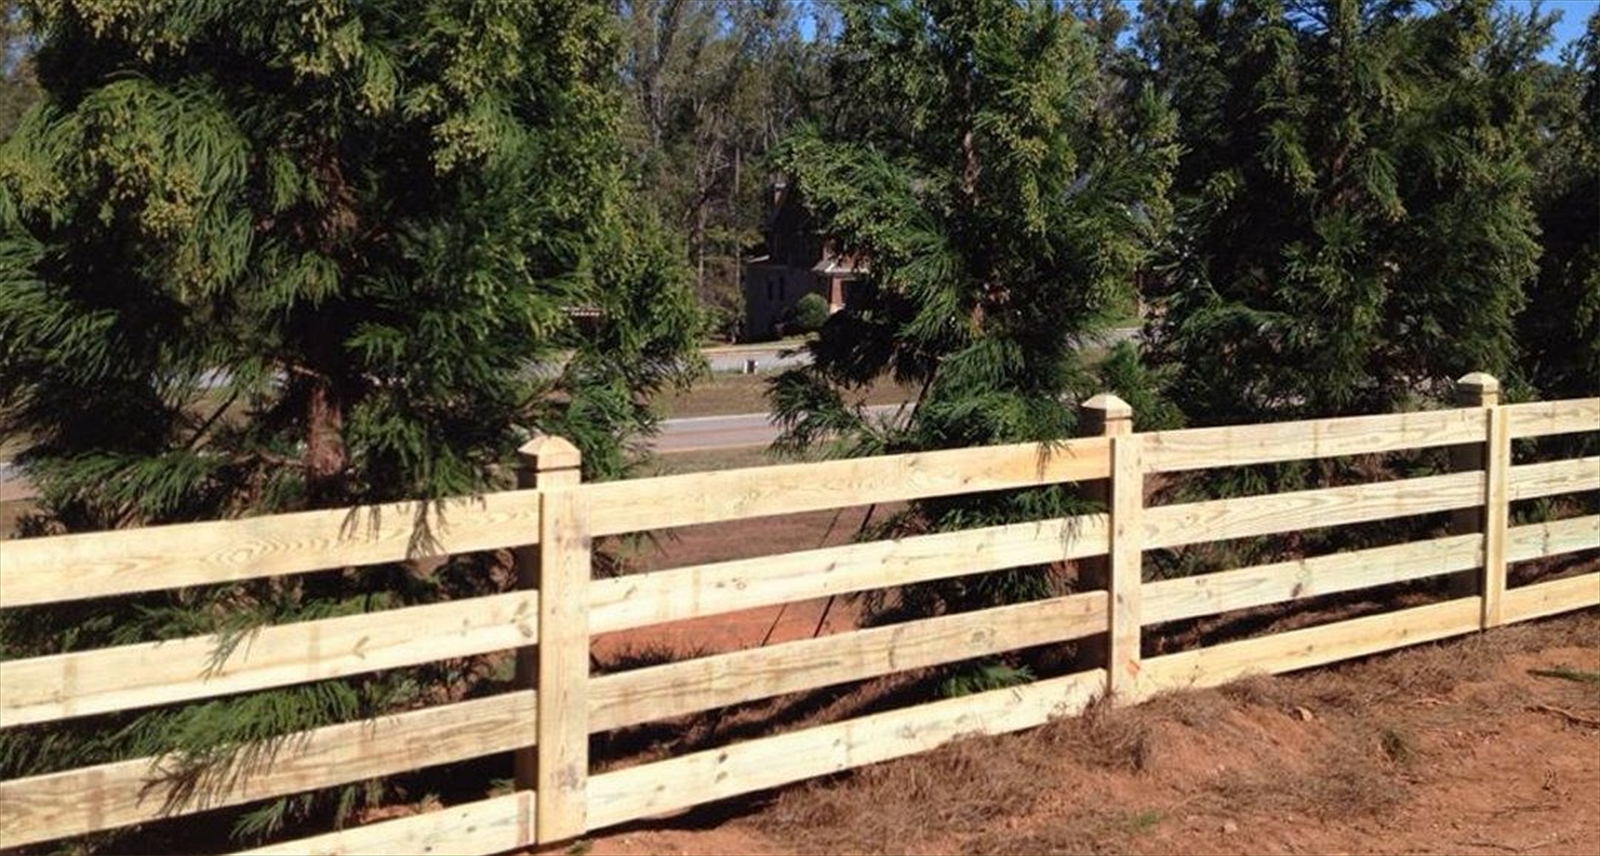 Akridge fence wood fencing farm horse